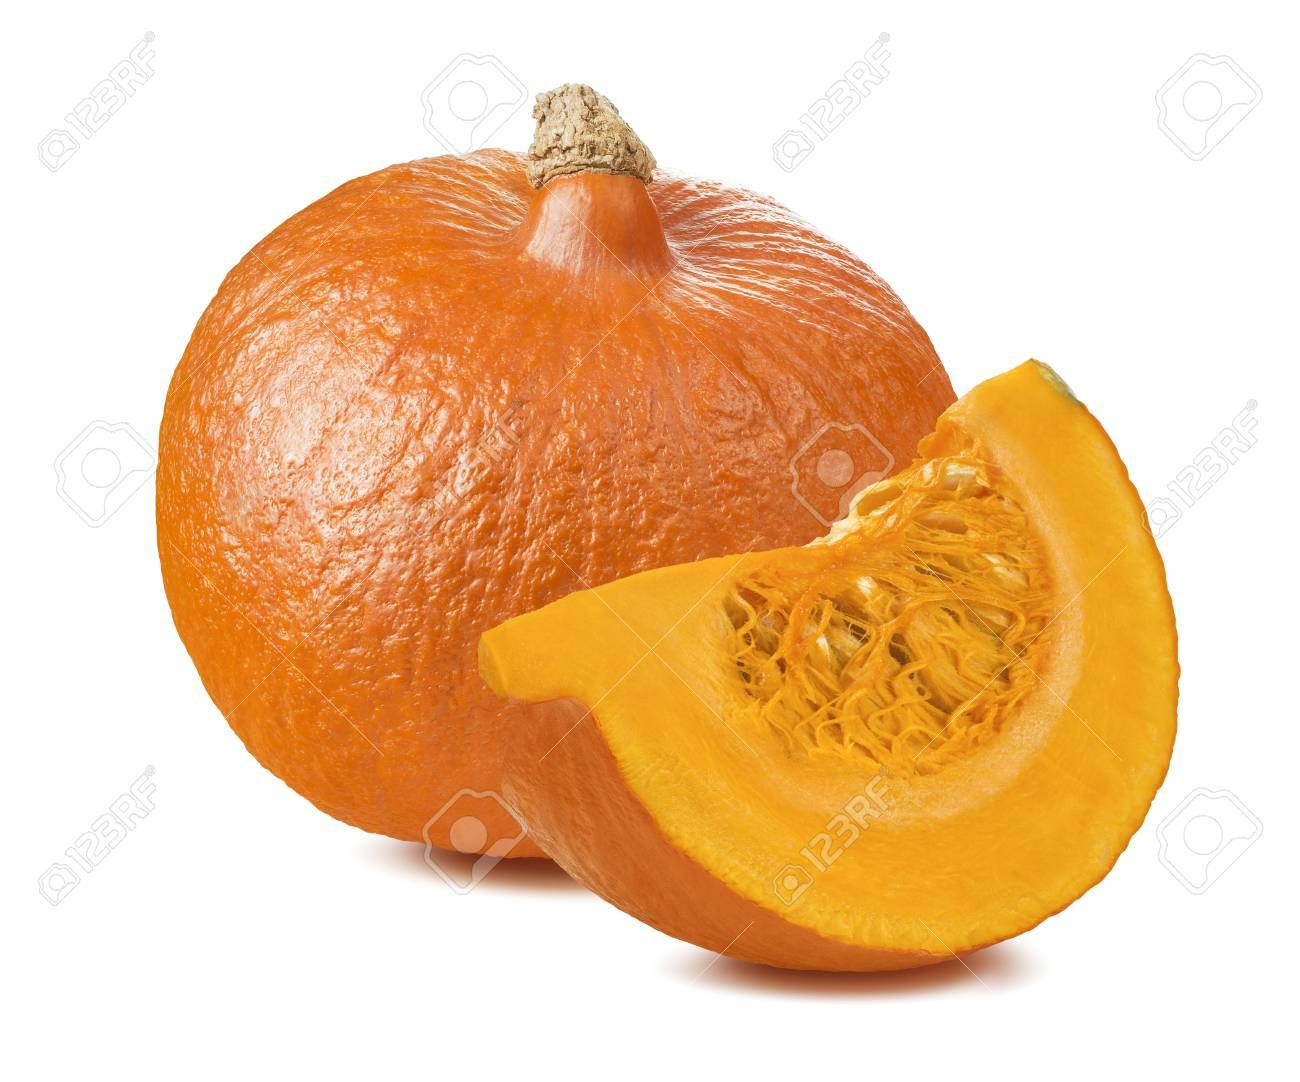 Pumpkin whole segment piece 2 isolated on white background as package design element - 55937973